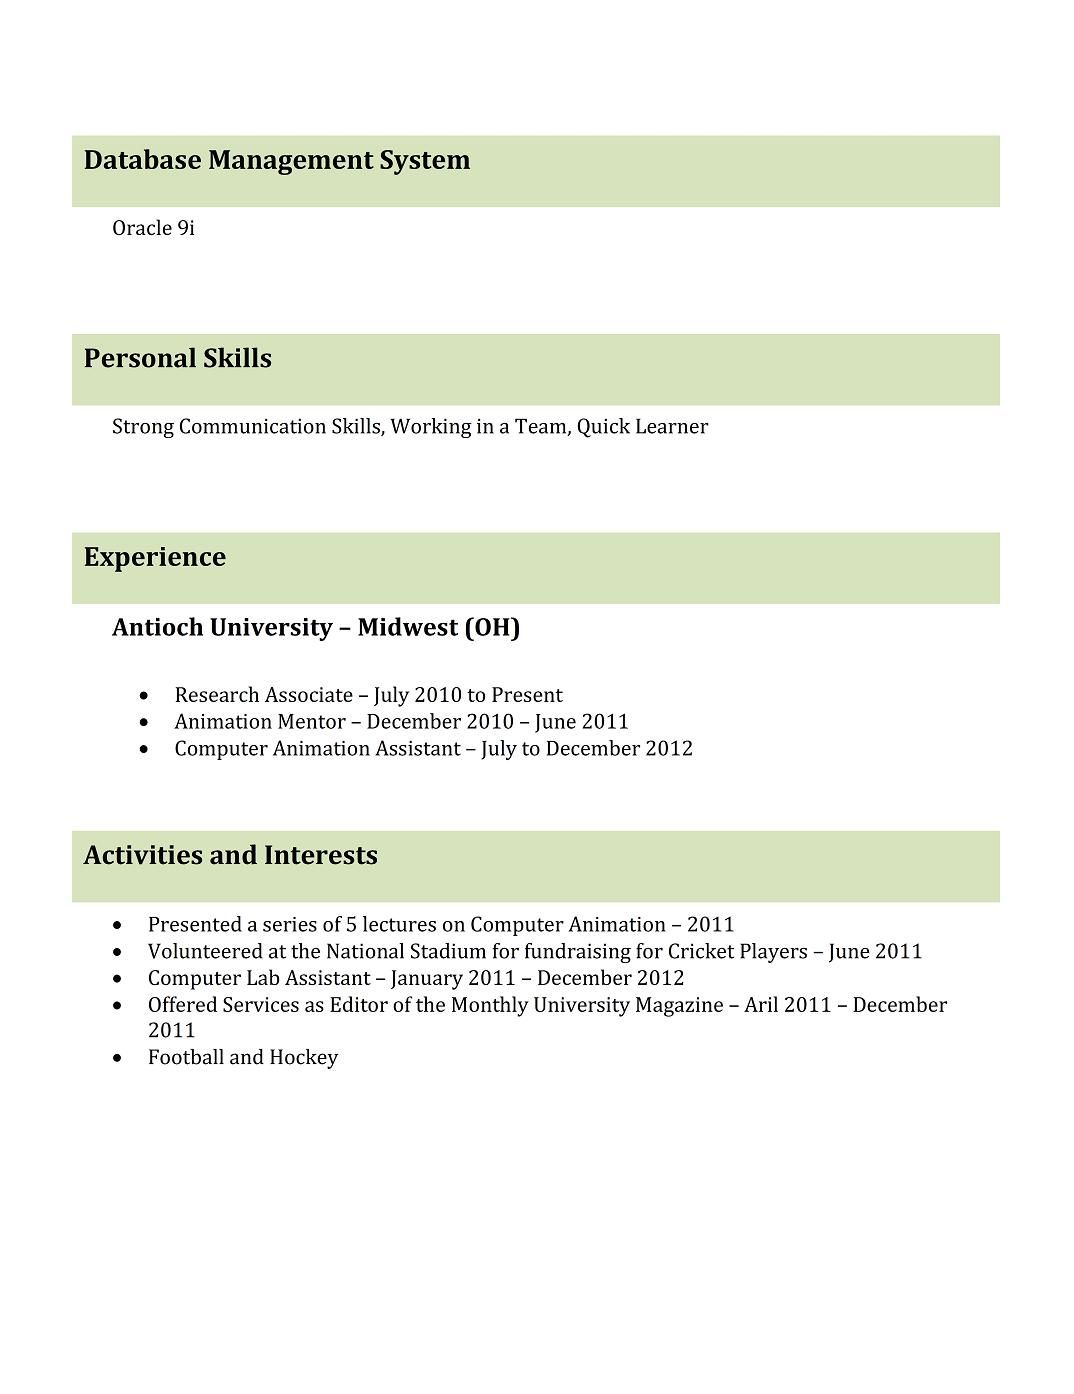 Download Resume Templates Free For Freshers Looking The First Job